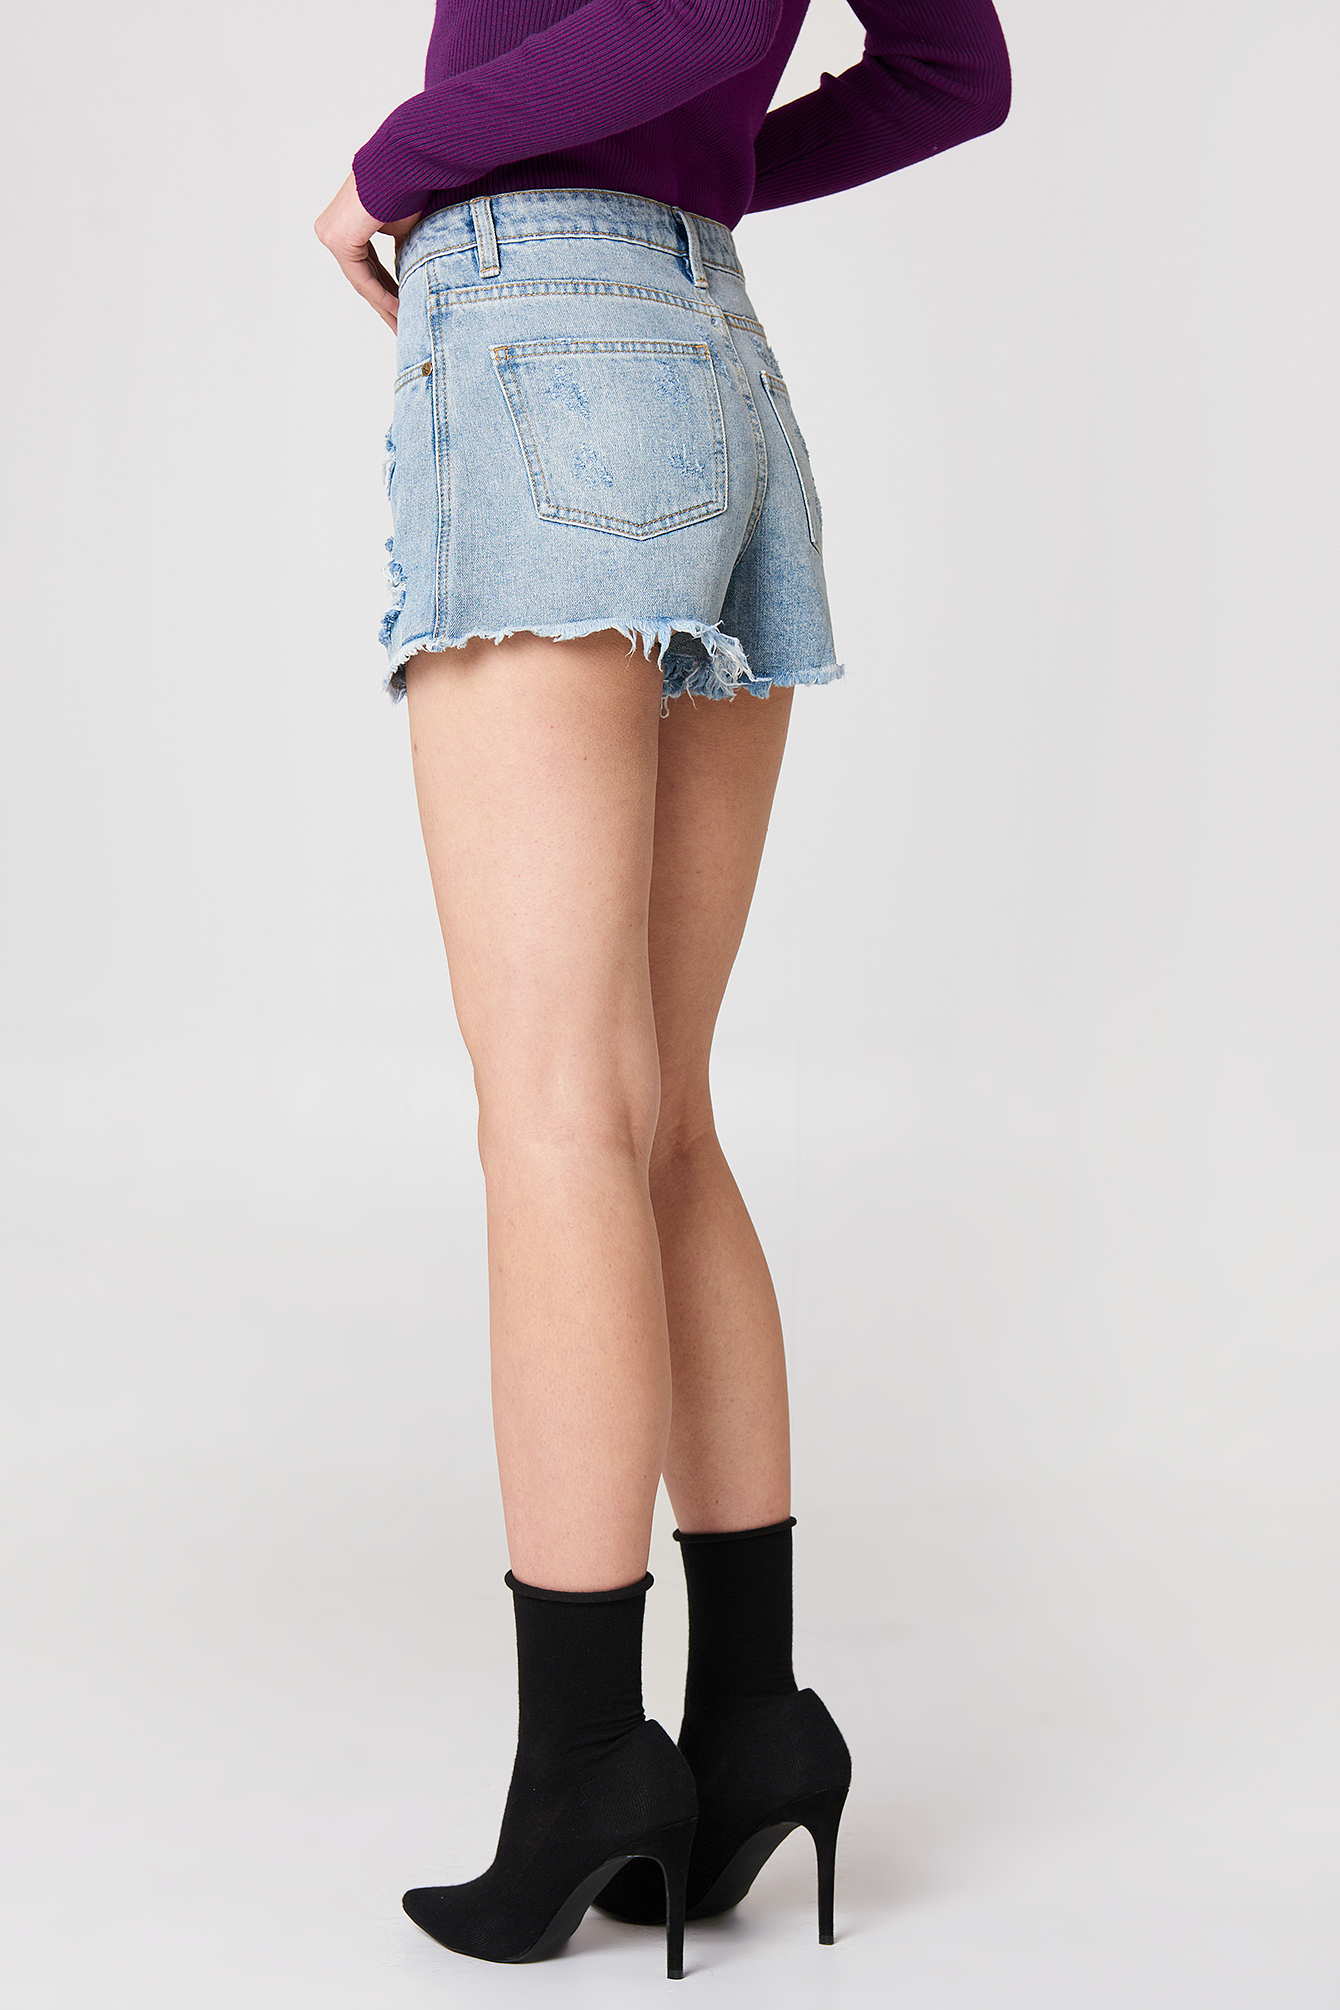 Trash Talk Denim Shorts NA-KD.COM